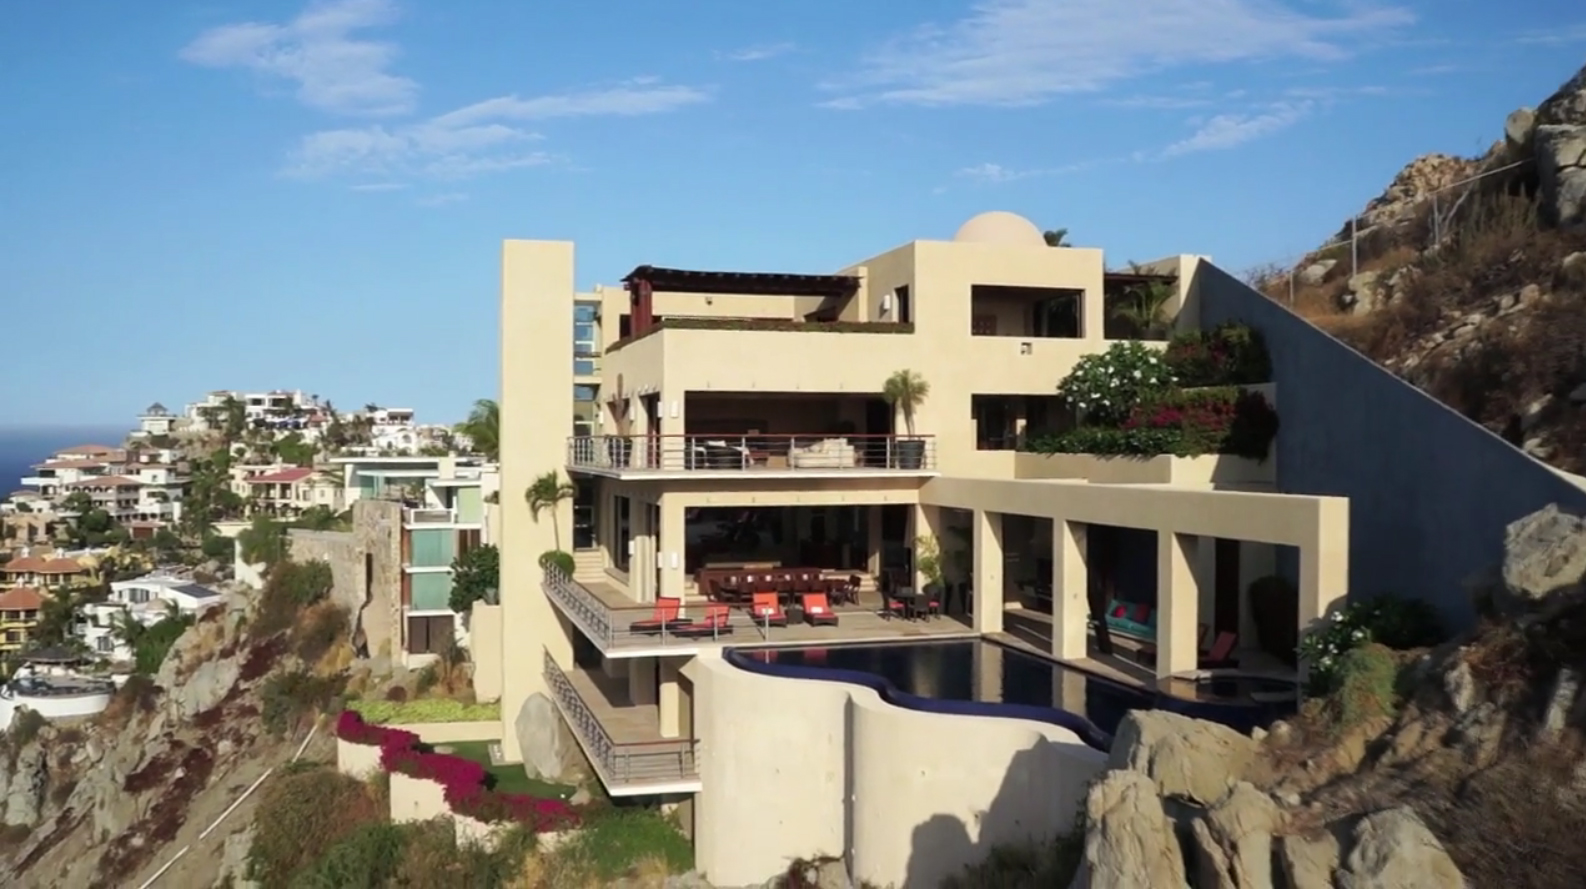 Villa Bellissima – Pedregal Community of Cabo San Lucas